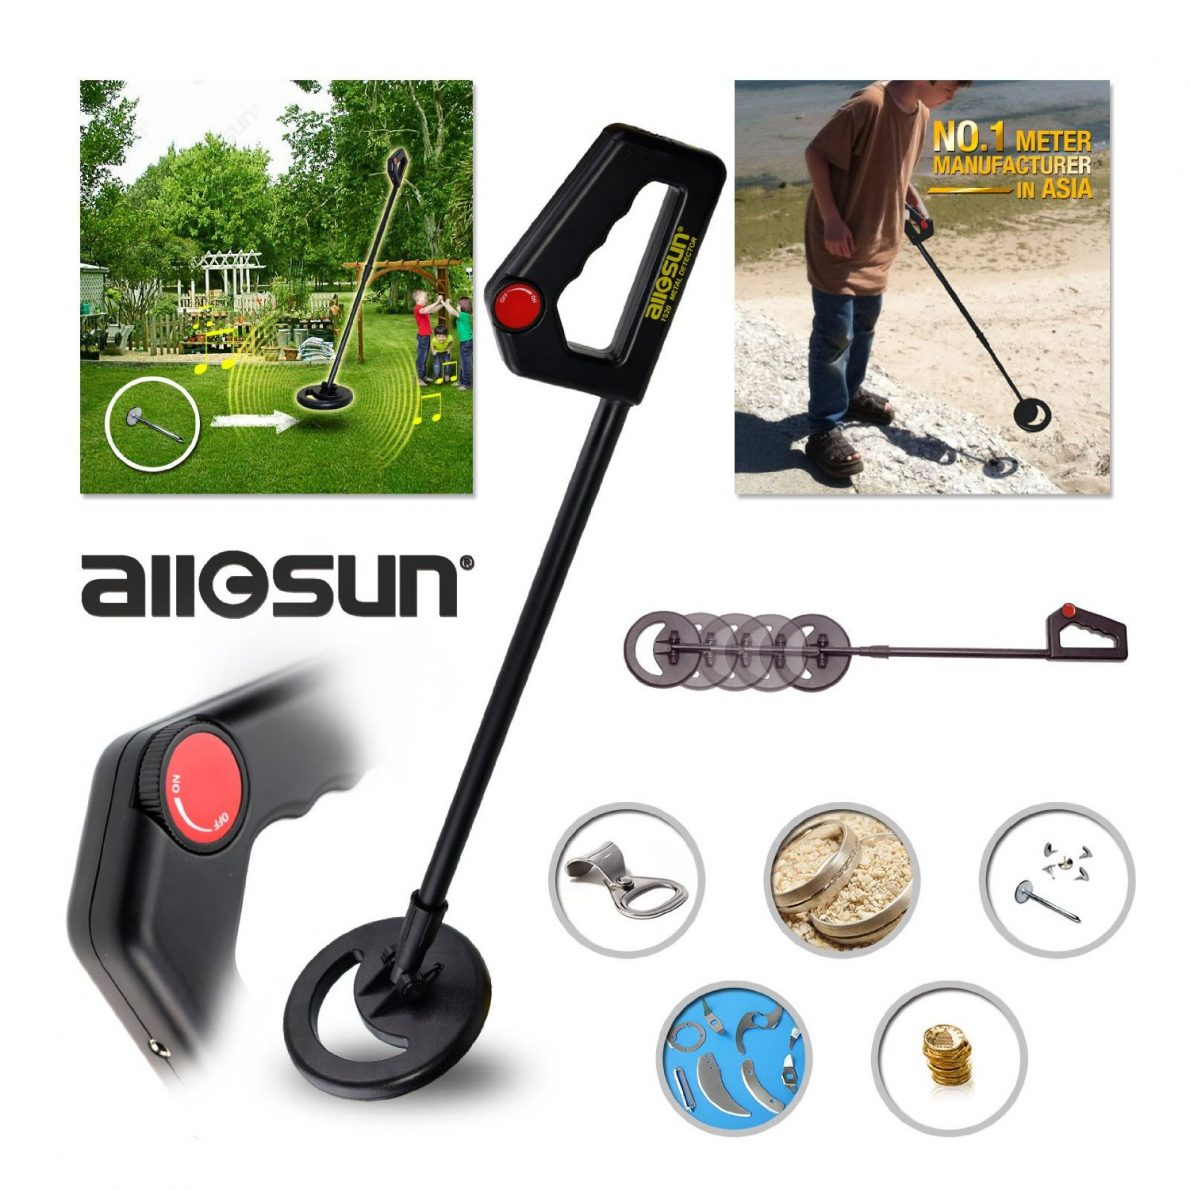 all-sun Junior Metal Detector Beach Yard Junior Ground Metal Detector Review